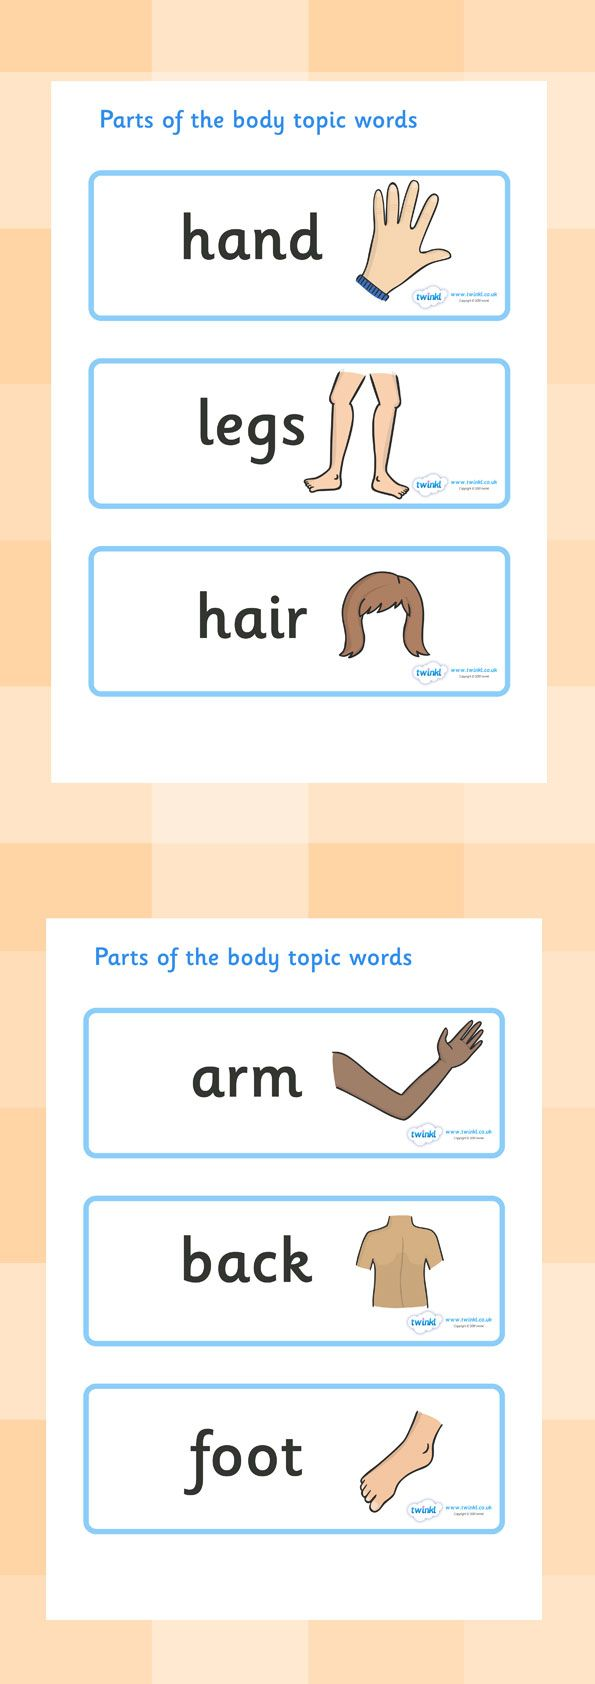 Twinkl Resources  Parts of the Body Topic Words   Classroom printables for Pre-School, Kindergarten, Elementary School and beyond! Topics, Ourselves, Human Body, Word Cards